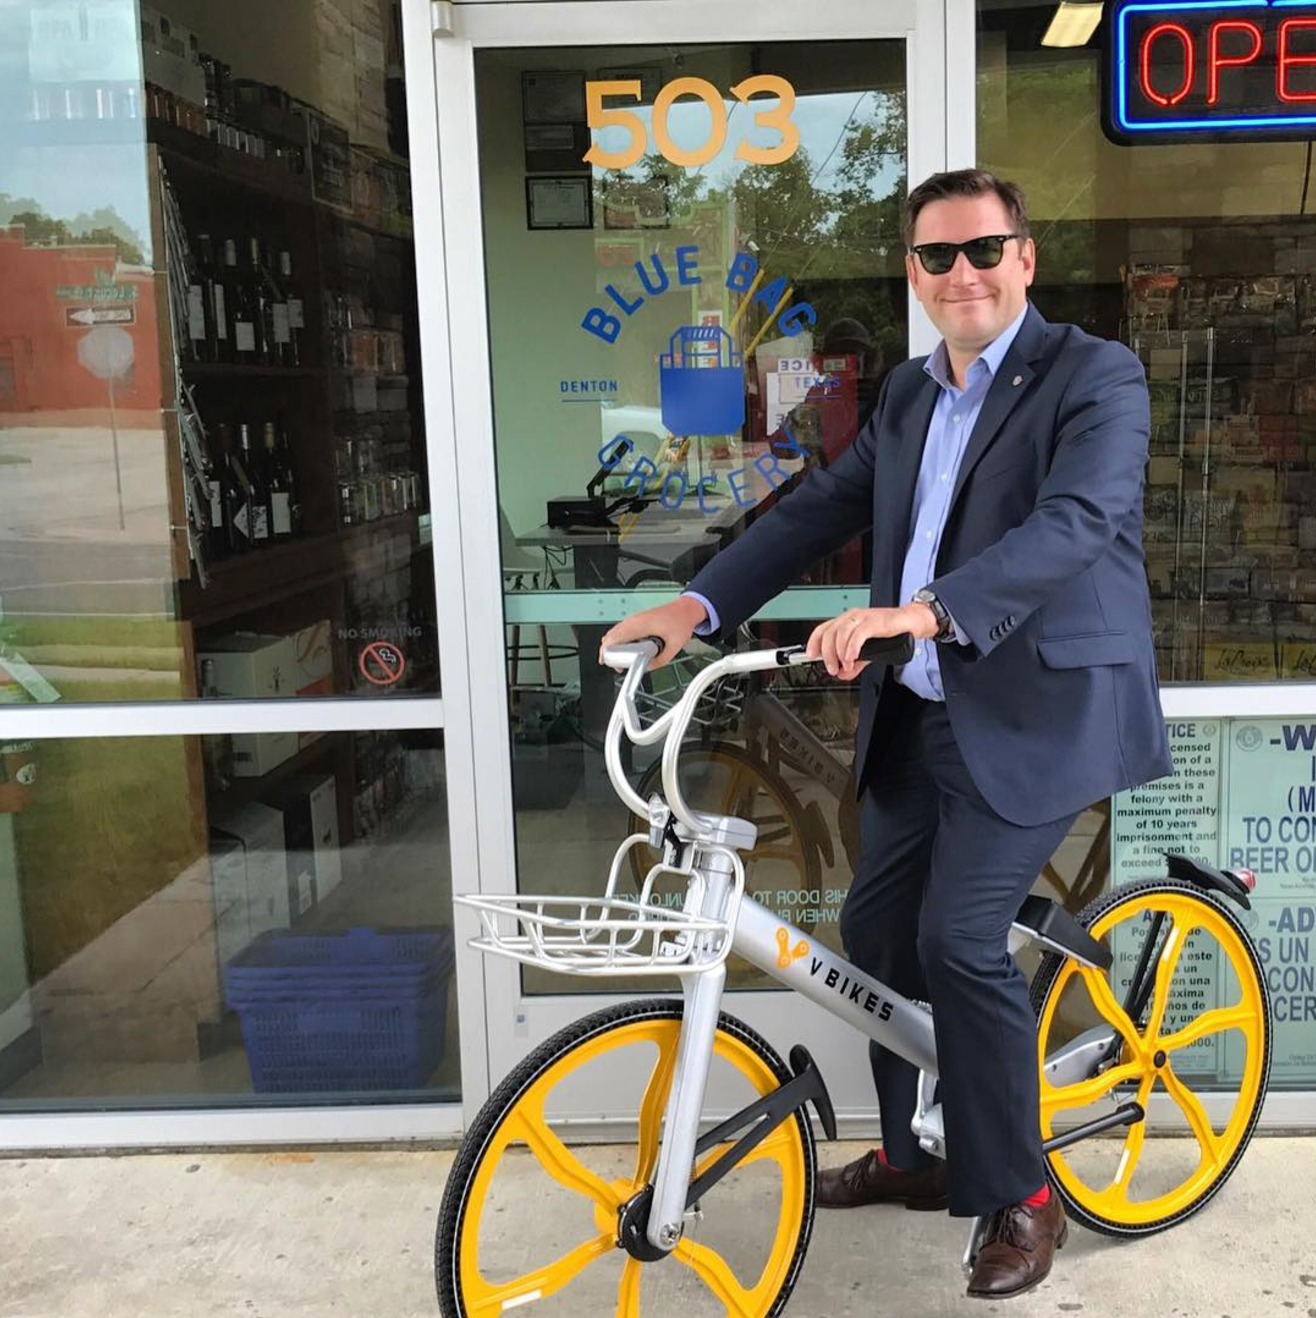 @glenfarris with a toothless grin with a @vbikestech bike. Glen, I think we need actual video of you riding in a suit.